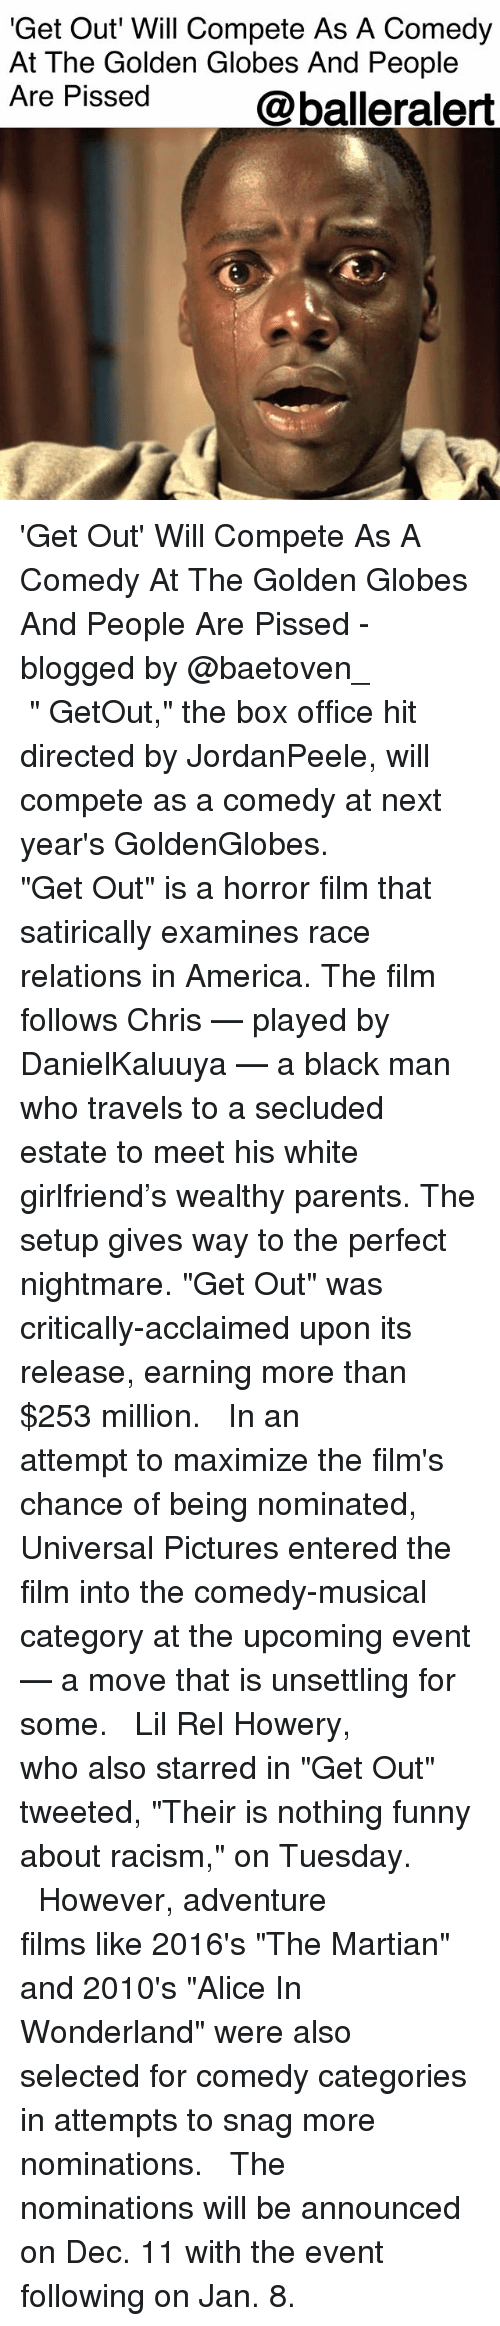 """Golden Globes: 'Get Out Will Compete As A Comedy  At The Golden Globes And People  Are Pissed  @balleralert 'Get Out' Will Compete As A Comedy At The Golden Globes And People Are Pissed - blogged by @baetoven_ ⠀⠀⠀⠀⠀⠀⠀ ⠀⠀⠀⠀⠀⠀⠀ """" GetOut,"""" the box office hit directed by JordanPeele, will compete as a comedy at next year's GoldenGlobes. ⠀⠀⠀⠀⠀⠀⠀ ⠀⠀⠀⠀⠀⠀⠀ """"Get Out"""" is a horror film that satirically examines race relations in America. The film follows Chris — played by DanielKaluuya — a black man who travels to a secluded estate to meet his white girlfriend's wealthy parents. The setup gives way to the perfect nightmare. """"Get Out"""" was critically-acclaimed upon its release, earning more than $253 million. ⠀⠀⠀⠀⠀⠀⠀ ⠀⠀⠀⠀⠀⠀⠀ In an attempt to maximize the film's chance of being nominated, Universal Pictures entered the film into the comedy-musical category at the upcoming event — a move that is unsettling for some. ⠀⠀⠀⠀⠀⠀⠀ ⠀⠀⠀⠀⠀⠀⠀ Lil Rel Howery, who also starred in """"Get Out"""" tweeted, """"Their is nothing funny about racism,"""" on Tuesday. ⠀⠀⠀⠀⠀⠀⠀ ⠀⠀⠀⠀⠀⠀⠀ However, adventure films like 2016's """"The Martian"""" and 2010's """"Alice In Wonderland"""" were also selected for comedy categories in attempts to snag more nominations. ⠀⠀⠀⠀⠀⠀⠀ ⠀⠀⠀⠀⠀⠀⠀ The nominations will be announced on Dec. 11 with the event following on Jan. 8."""